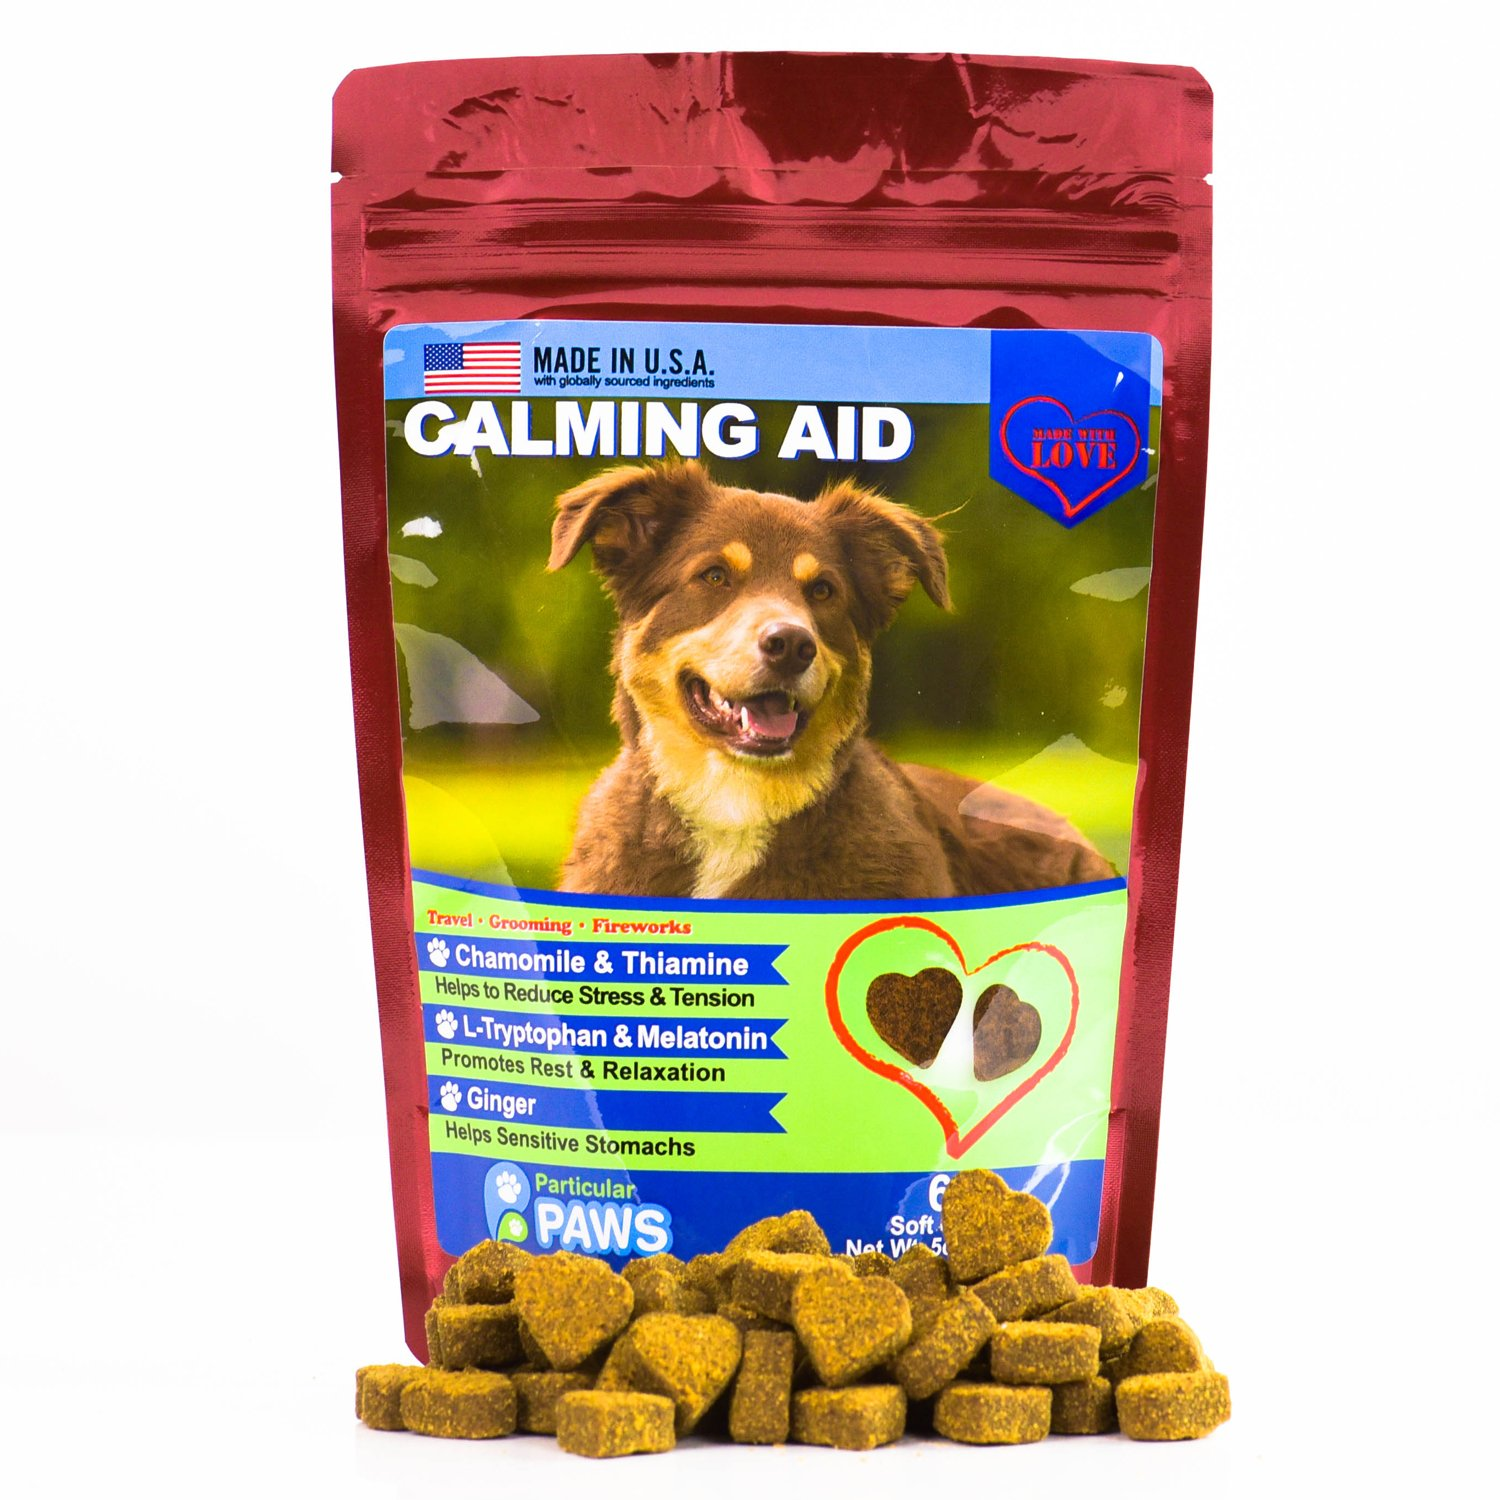 Dog Calming Aid - Treats - Melatonin, L Tryptophan, Chamomile Flower, Passion Flower and Thiamine Mononitrate - 65 Soft Chews